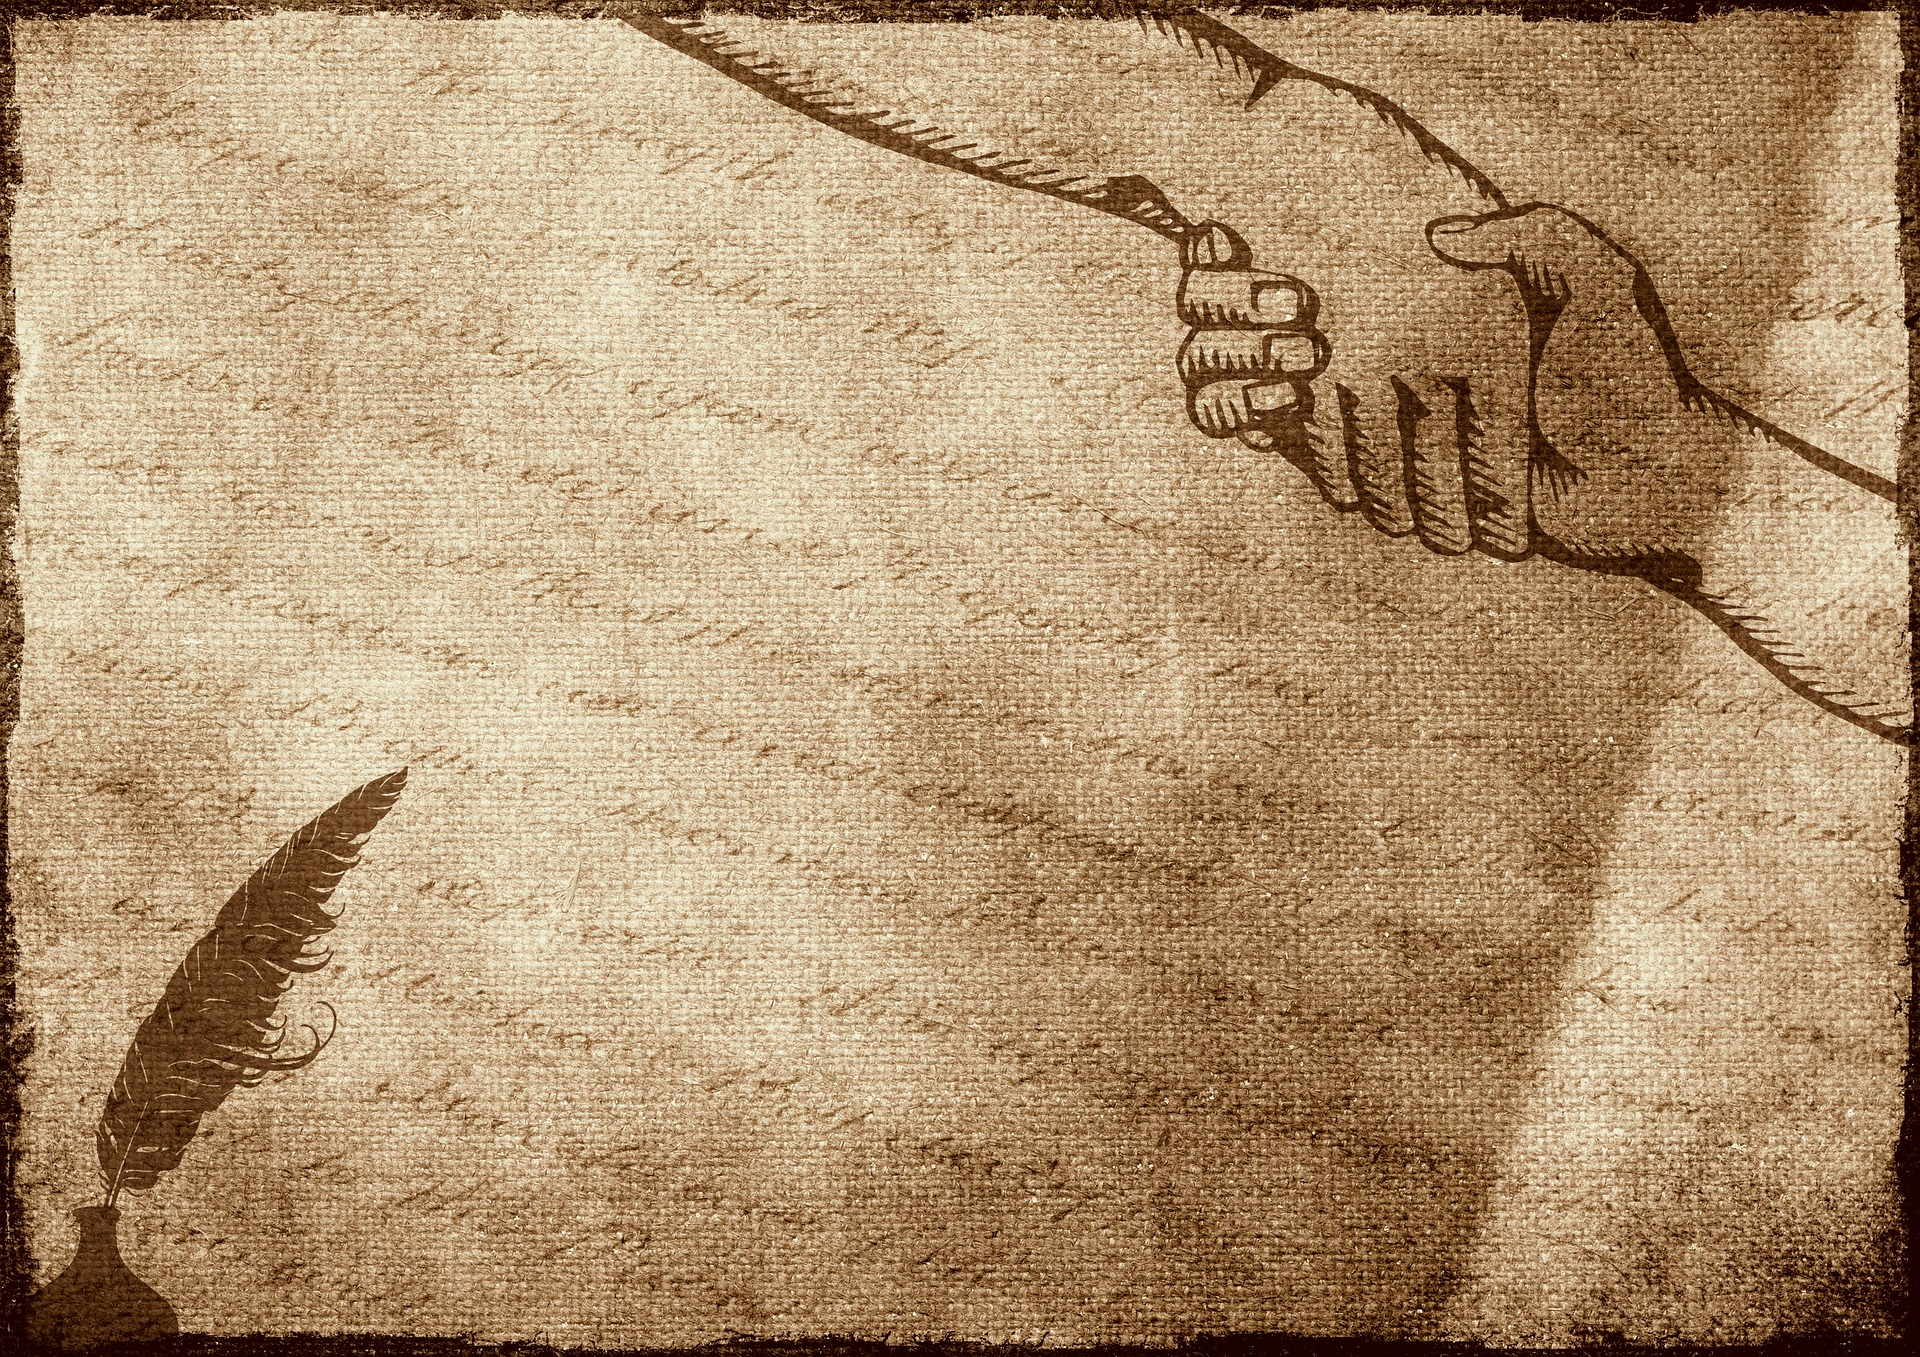 image of parchment contract